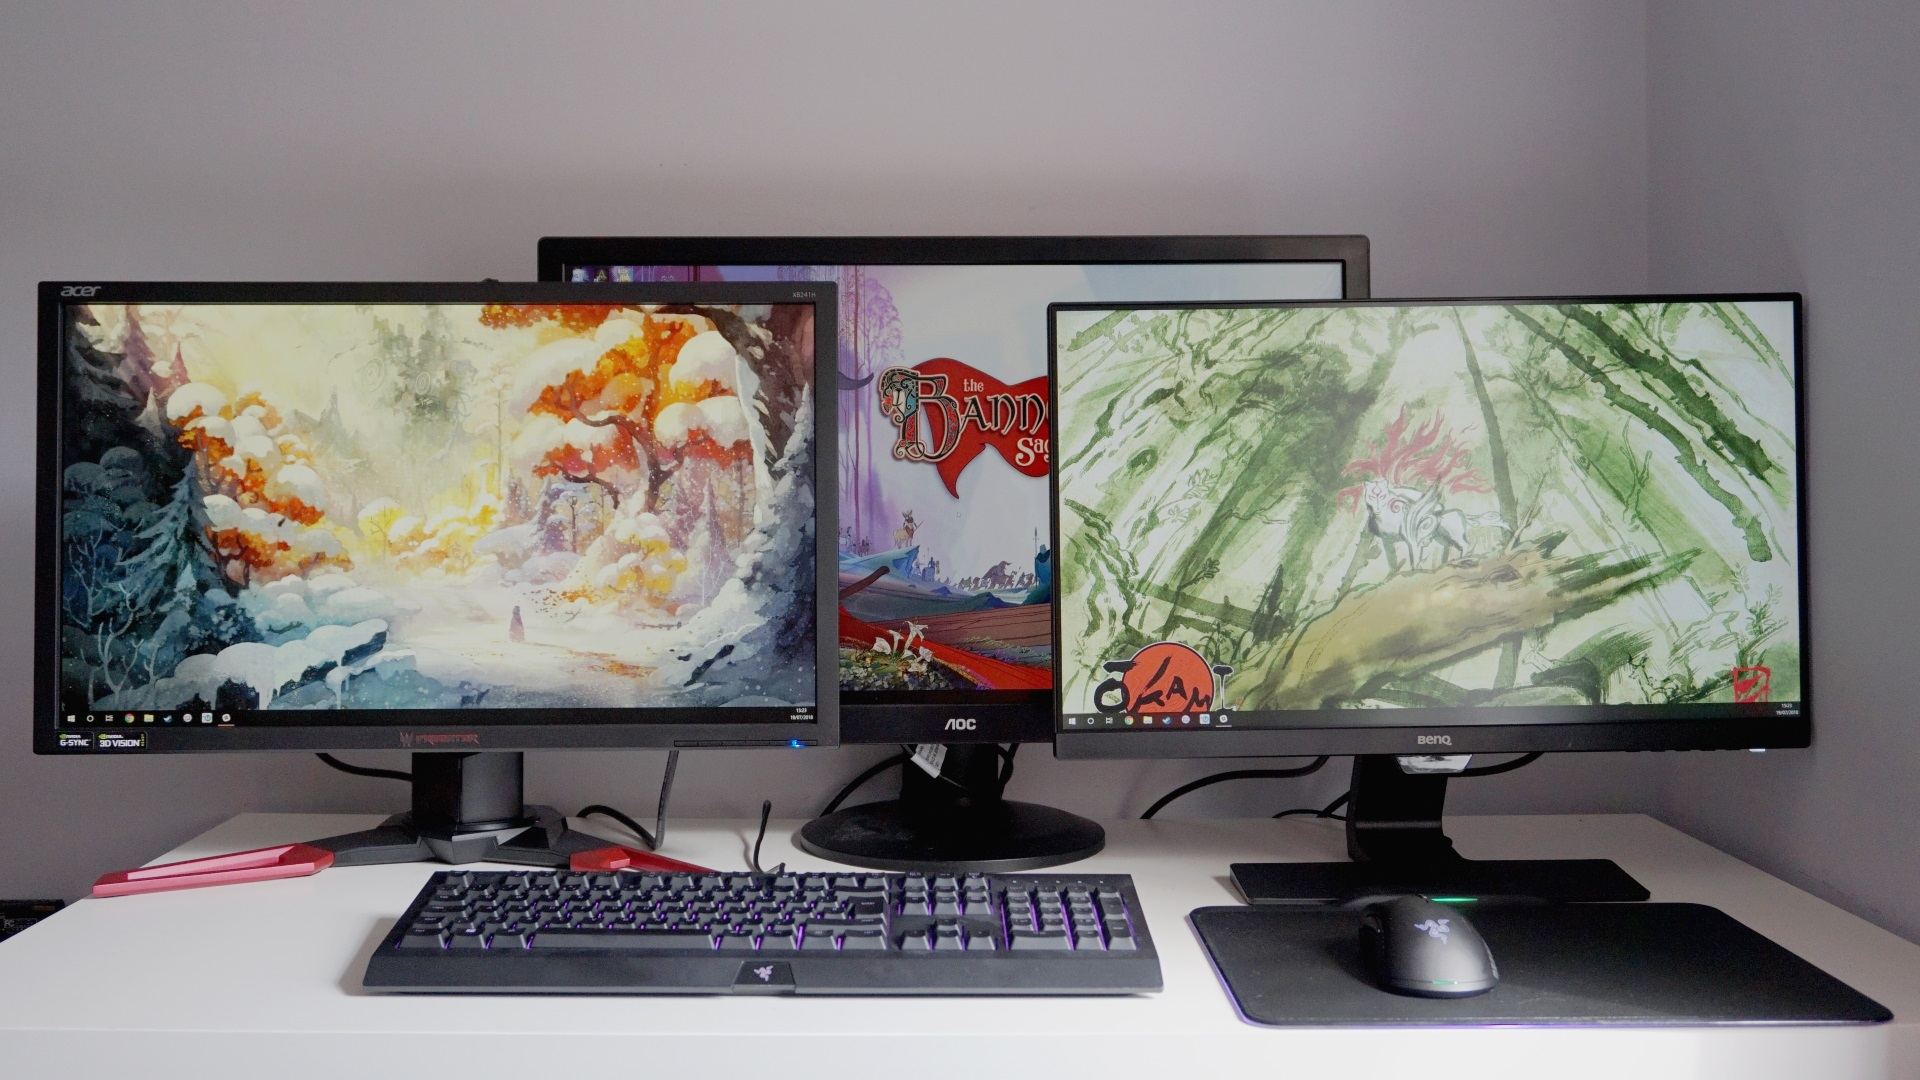 Best gaming monitor 2019: Top 1080p, 1440p and 4K HDR displays